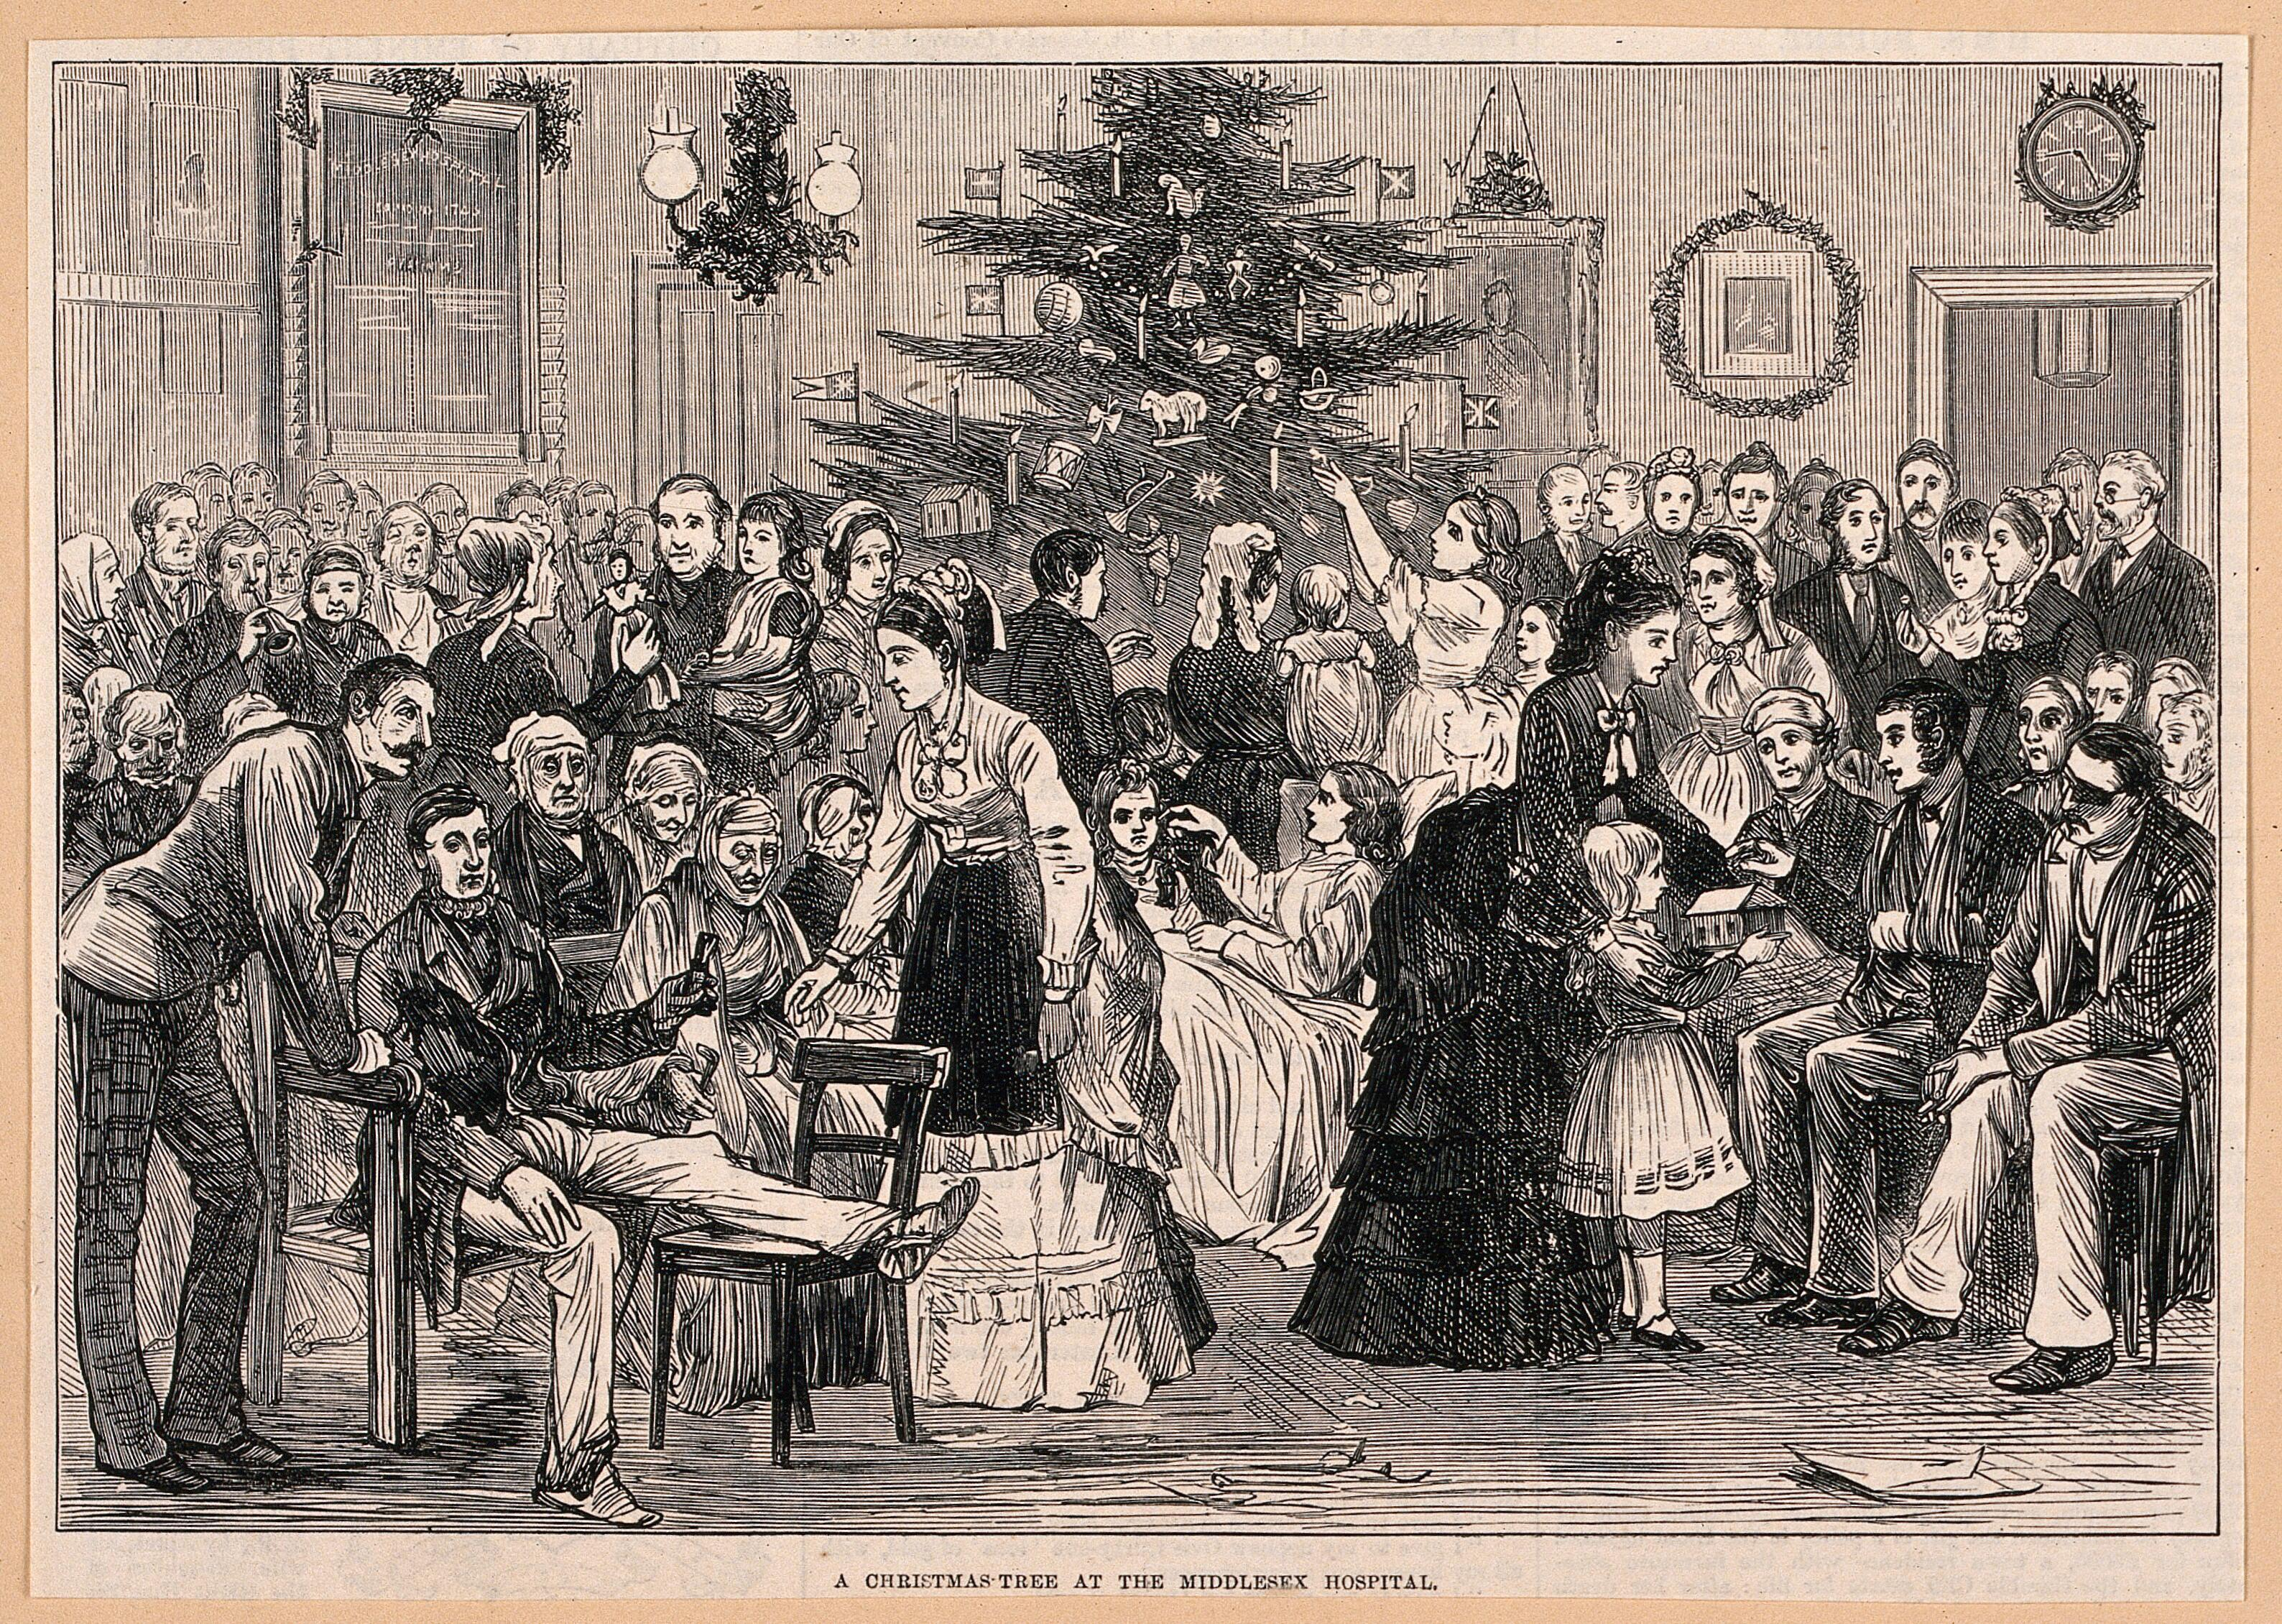 The Middlesex Hospital A Party In A Ward With A Christmas